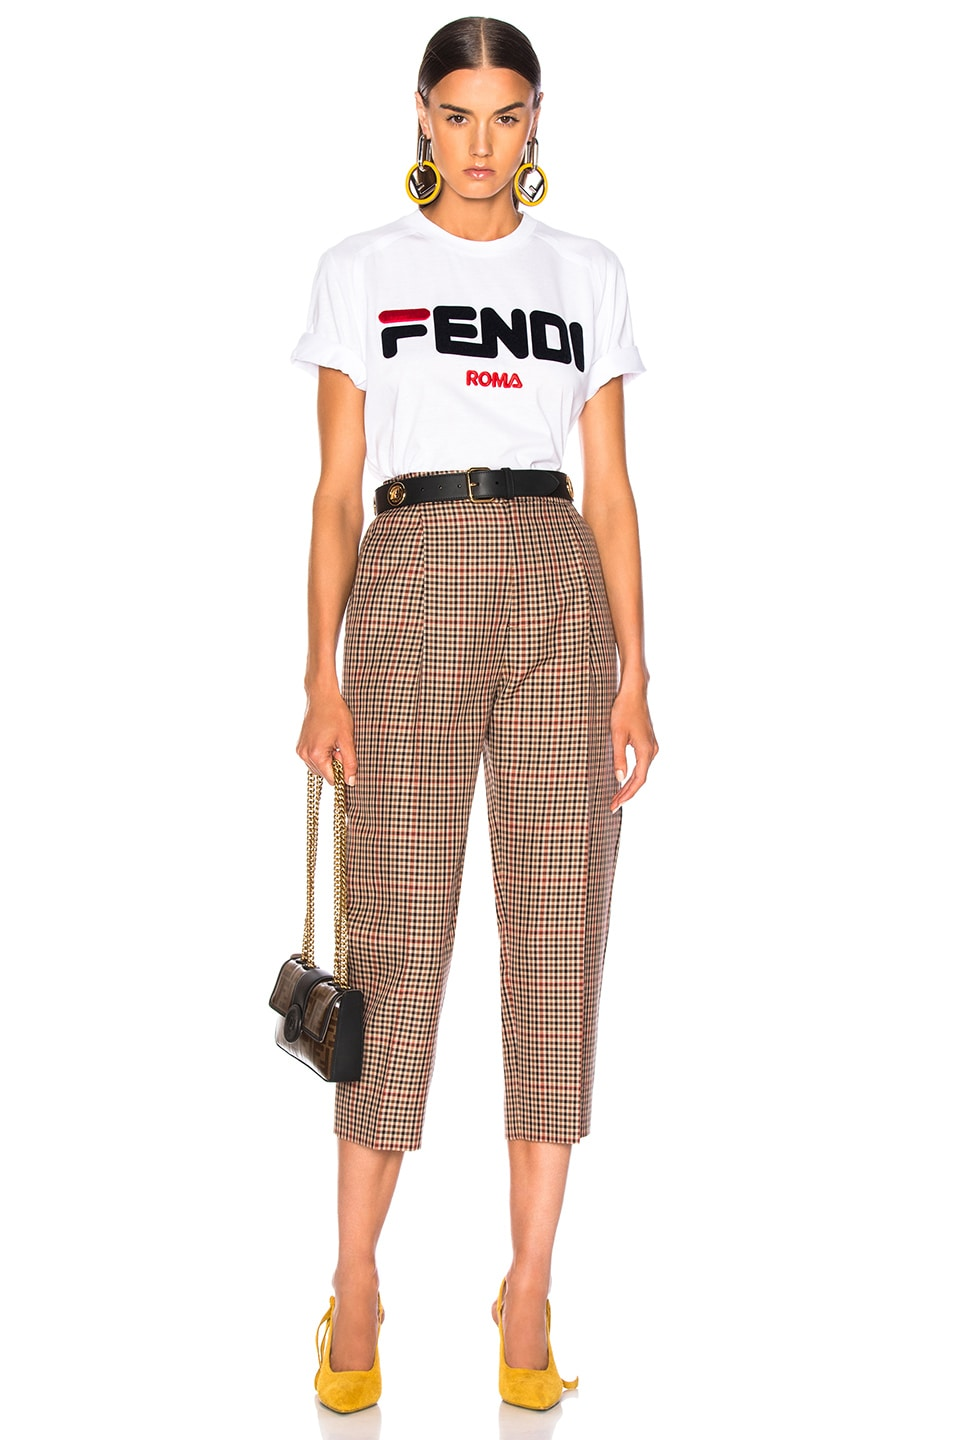 Image 5 of Fendi Fendi Mania Logo Tee in White